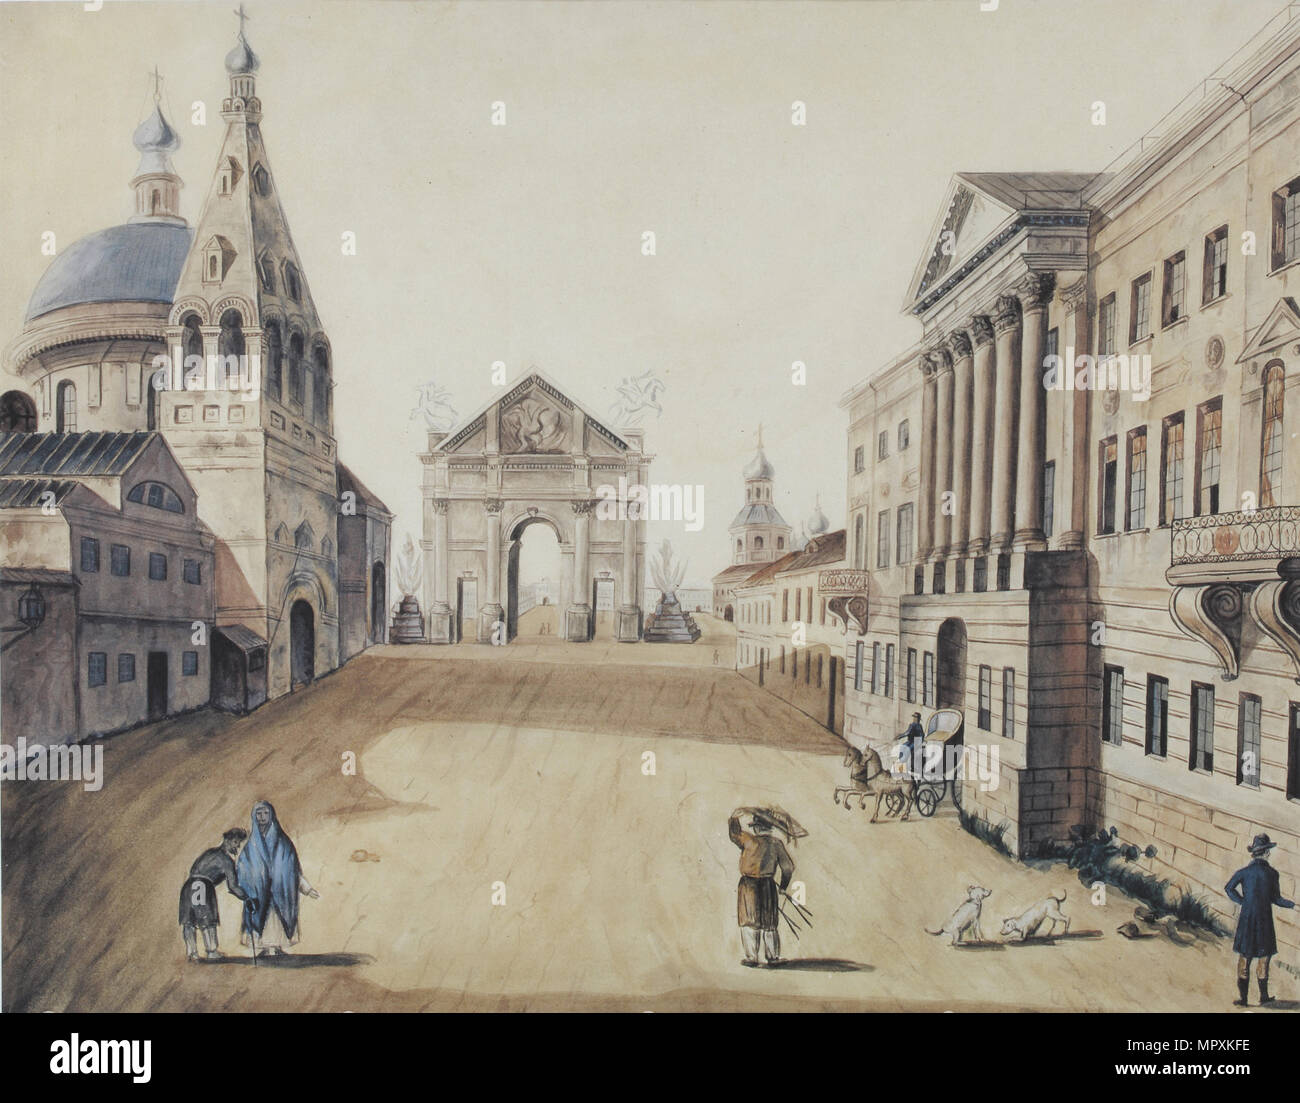 View of the Strastnaya Square in Moscow, Early 1800s. - Stock Image